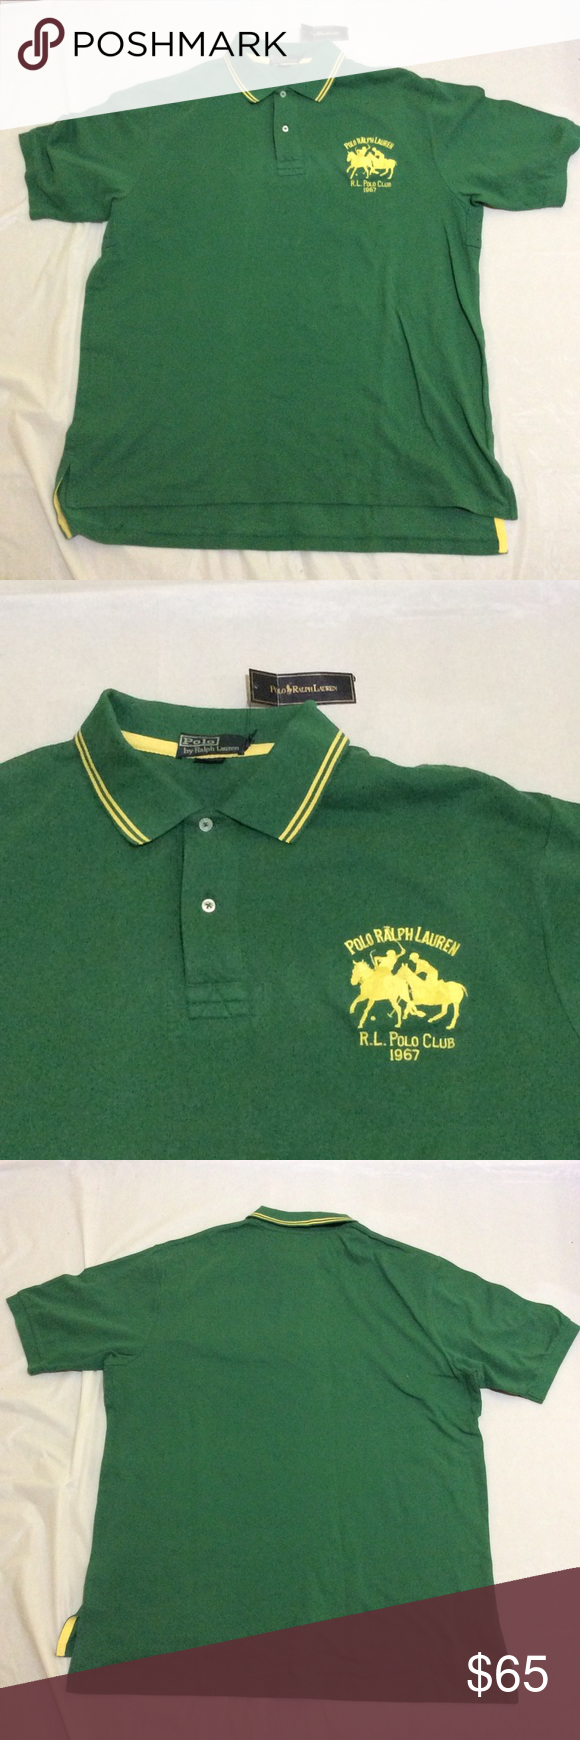 ralph lauren polo shirts with two horses